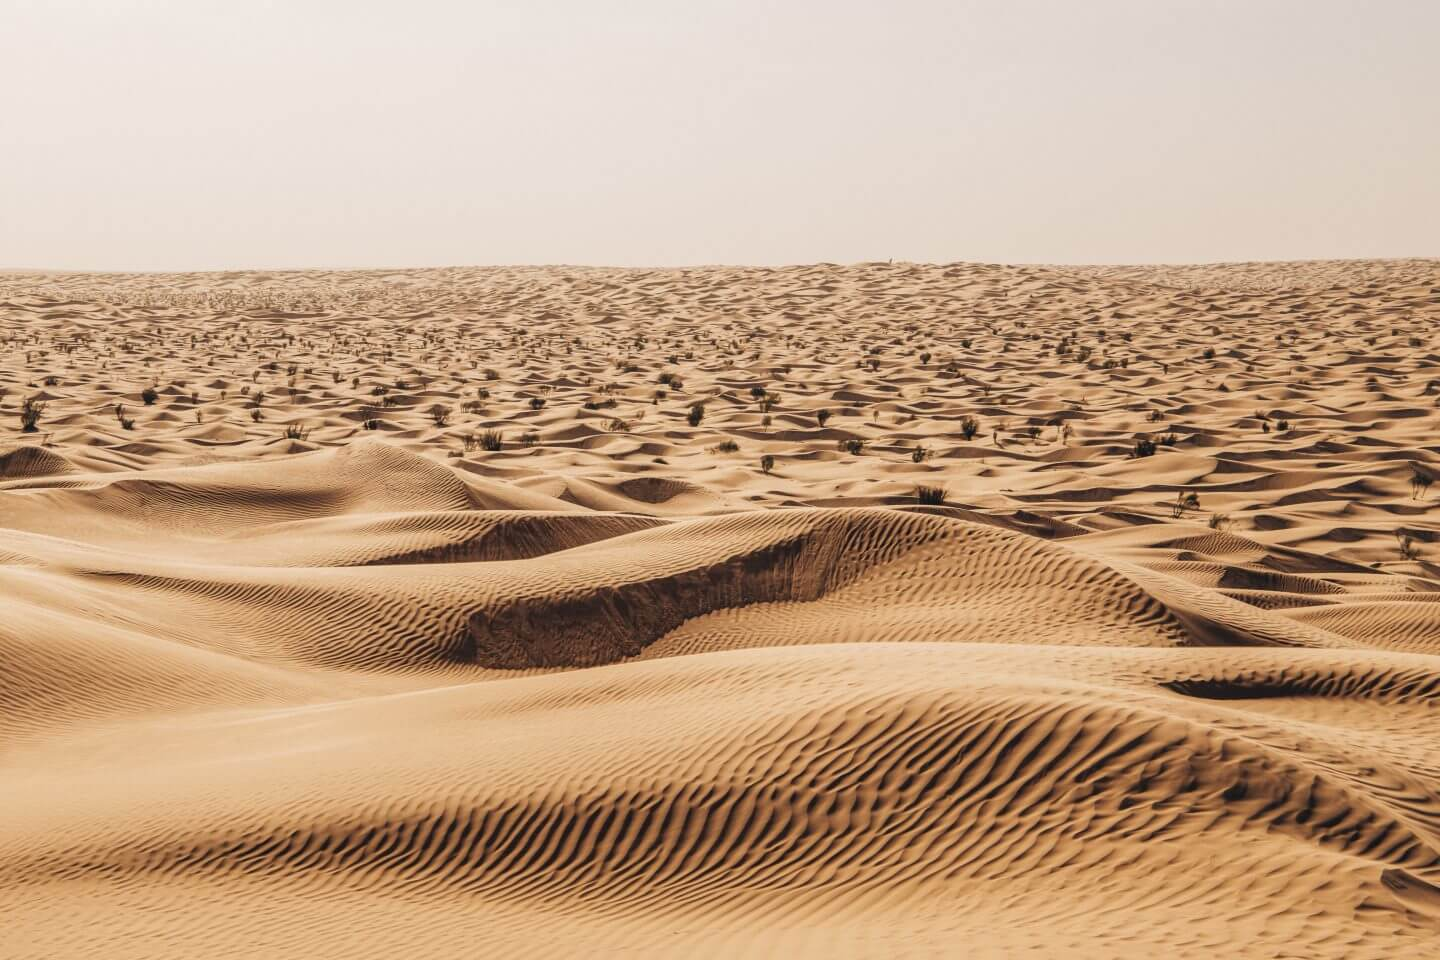 desert of Tunisia